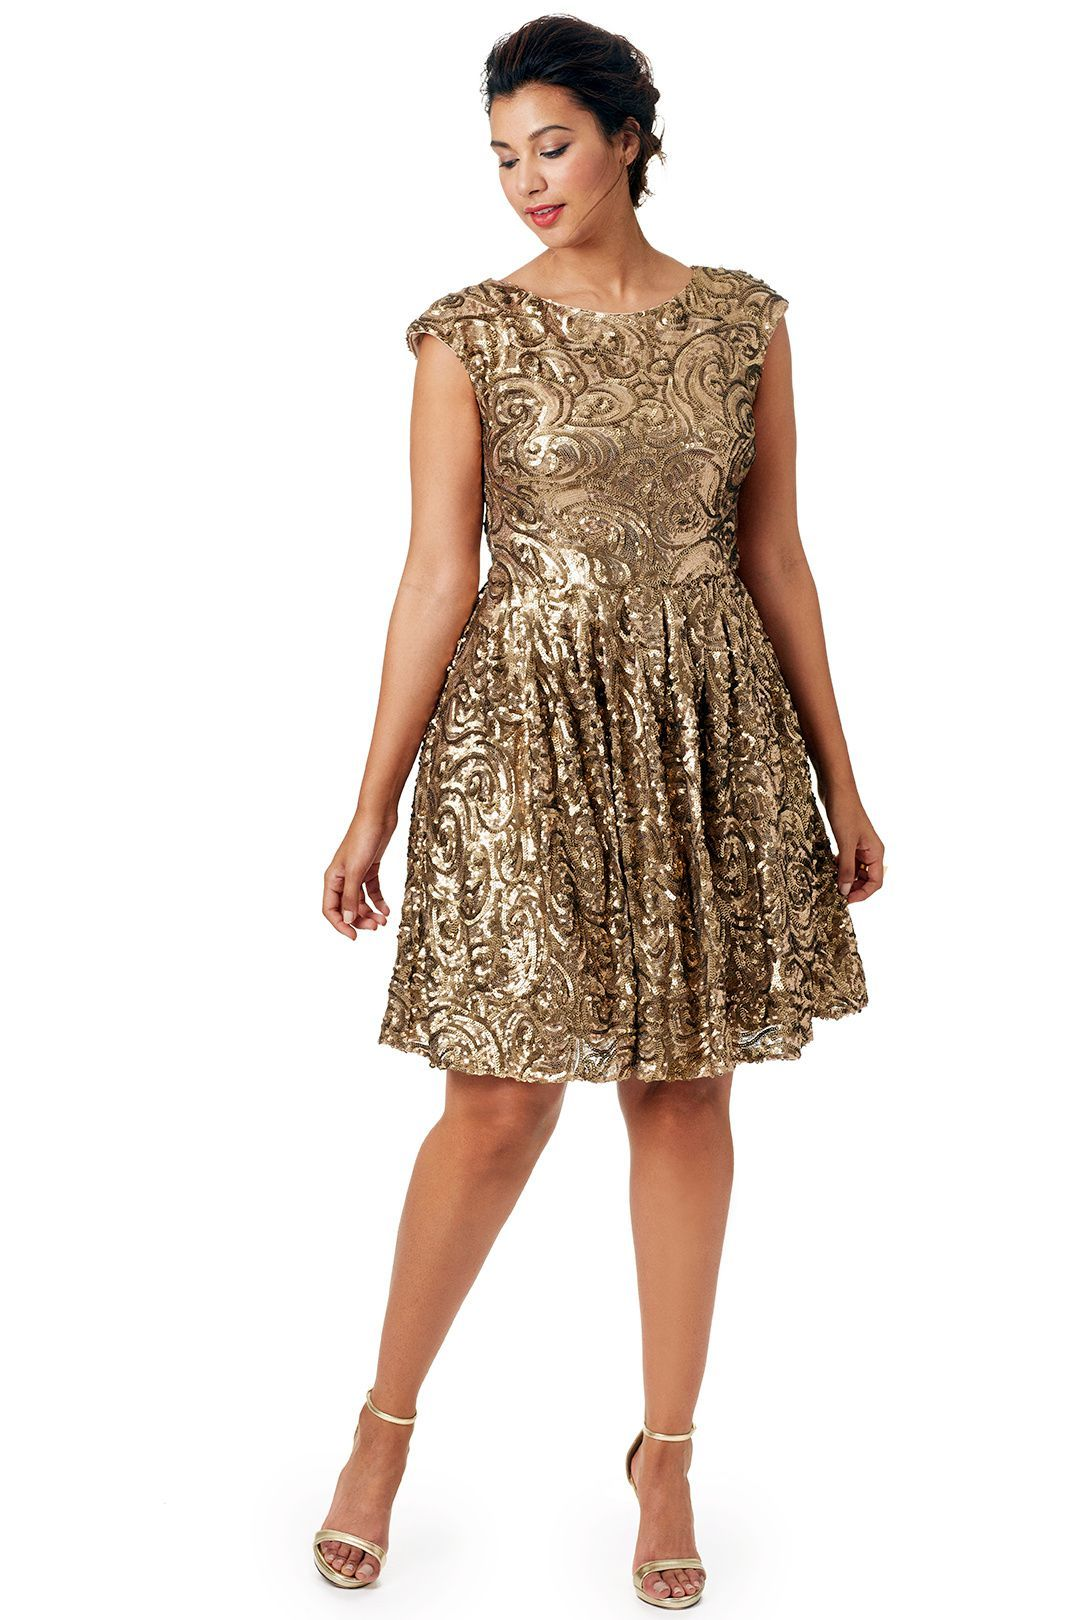 16 Best Rental Prom Dresses For Under 200 Where To Rent Prom Dresses